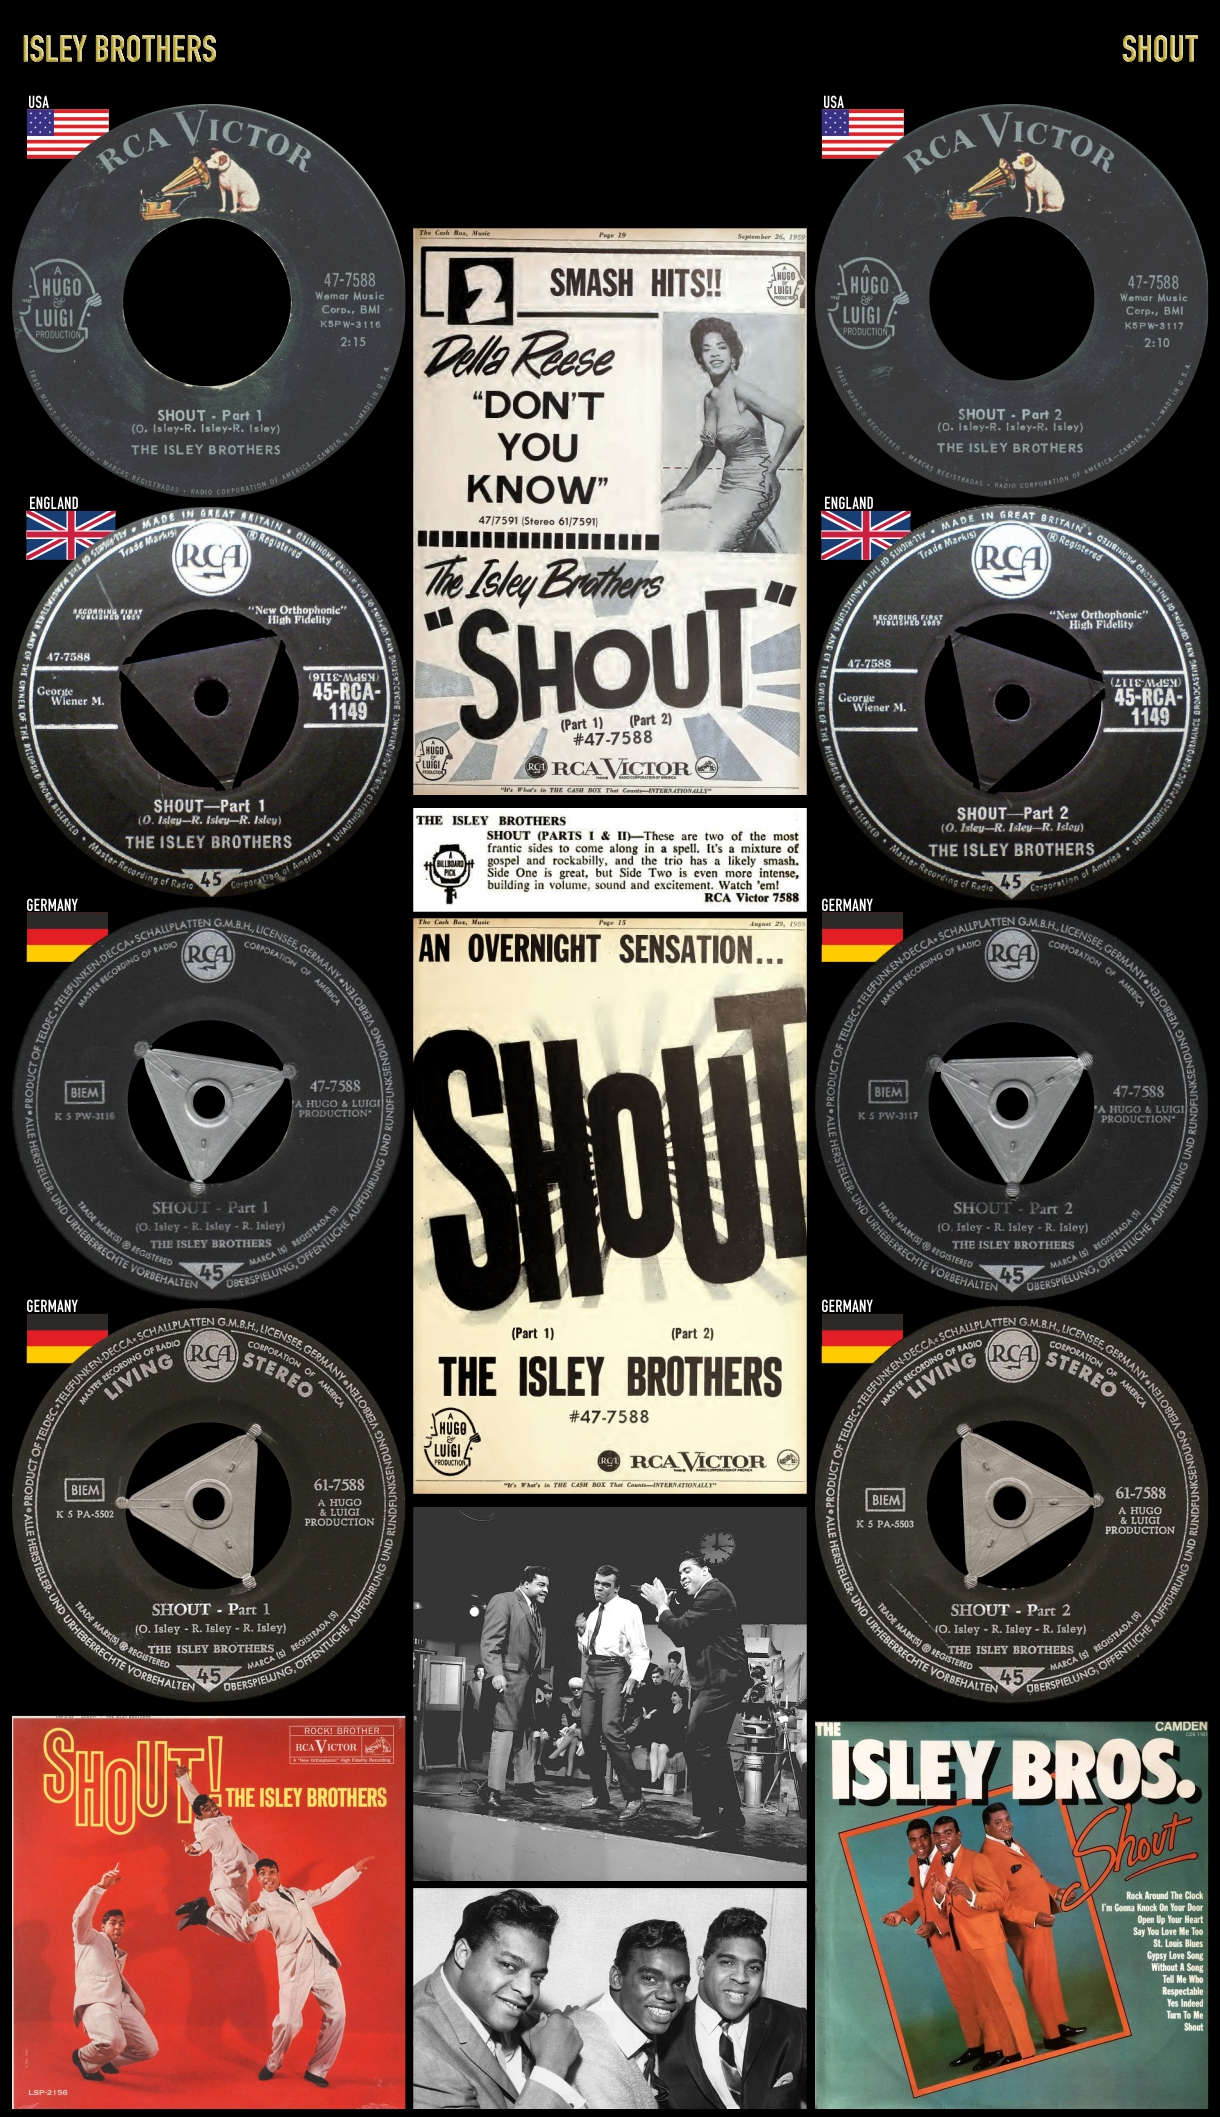 590919_Isley Brothers_Shout